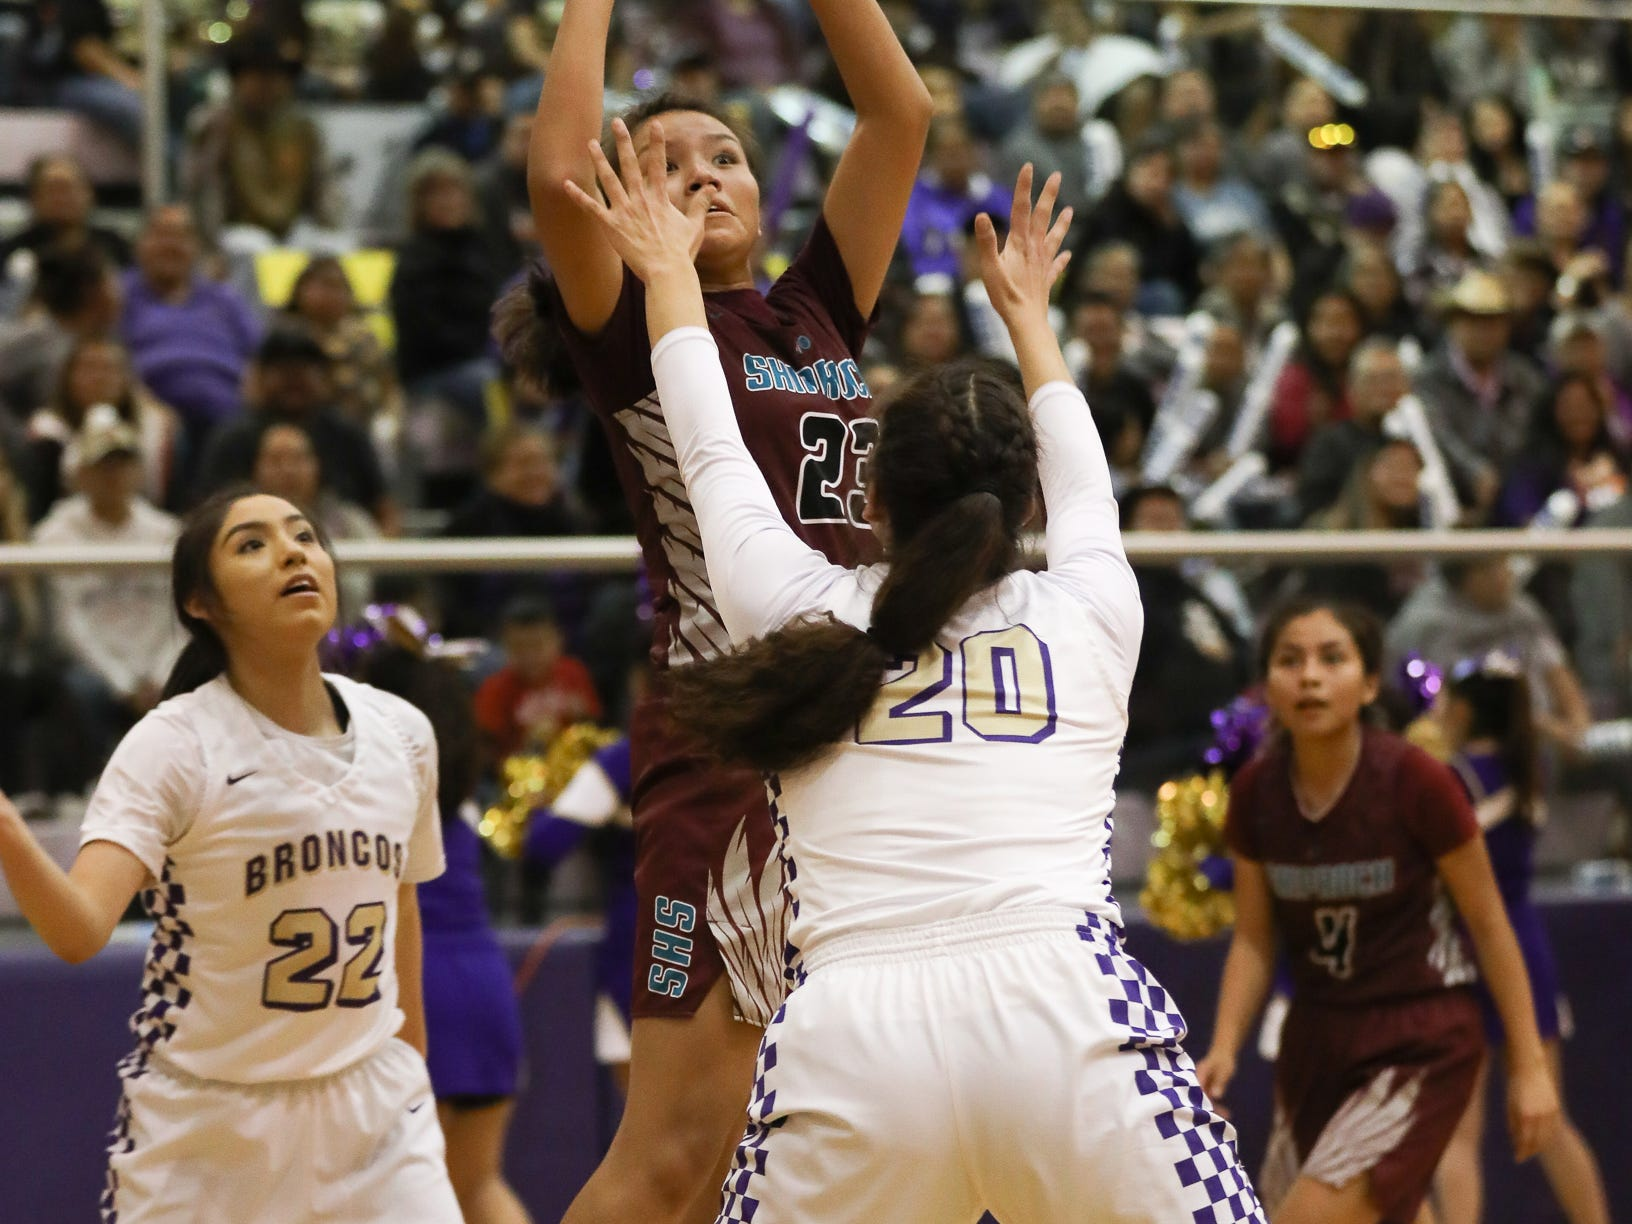 Shiprock's Aaryanna Lansing shoots a jumper over Kirtland Central's Siigrid Lii'binaghahi during Friday's 4A playoff opener at Bronco Arena in Kirtland.